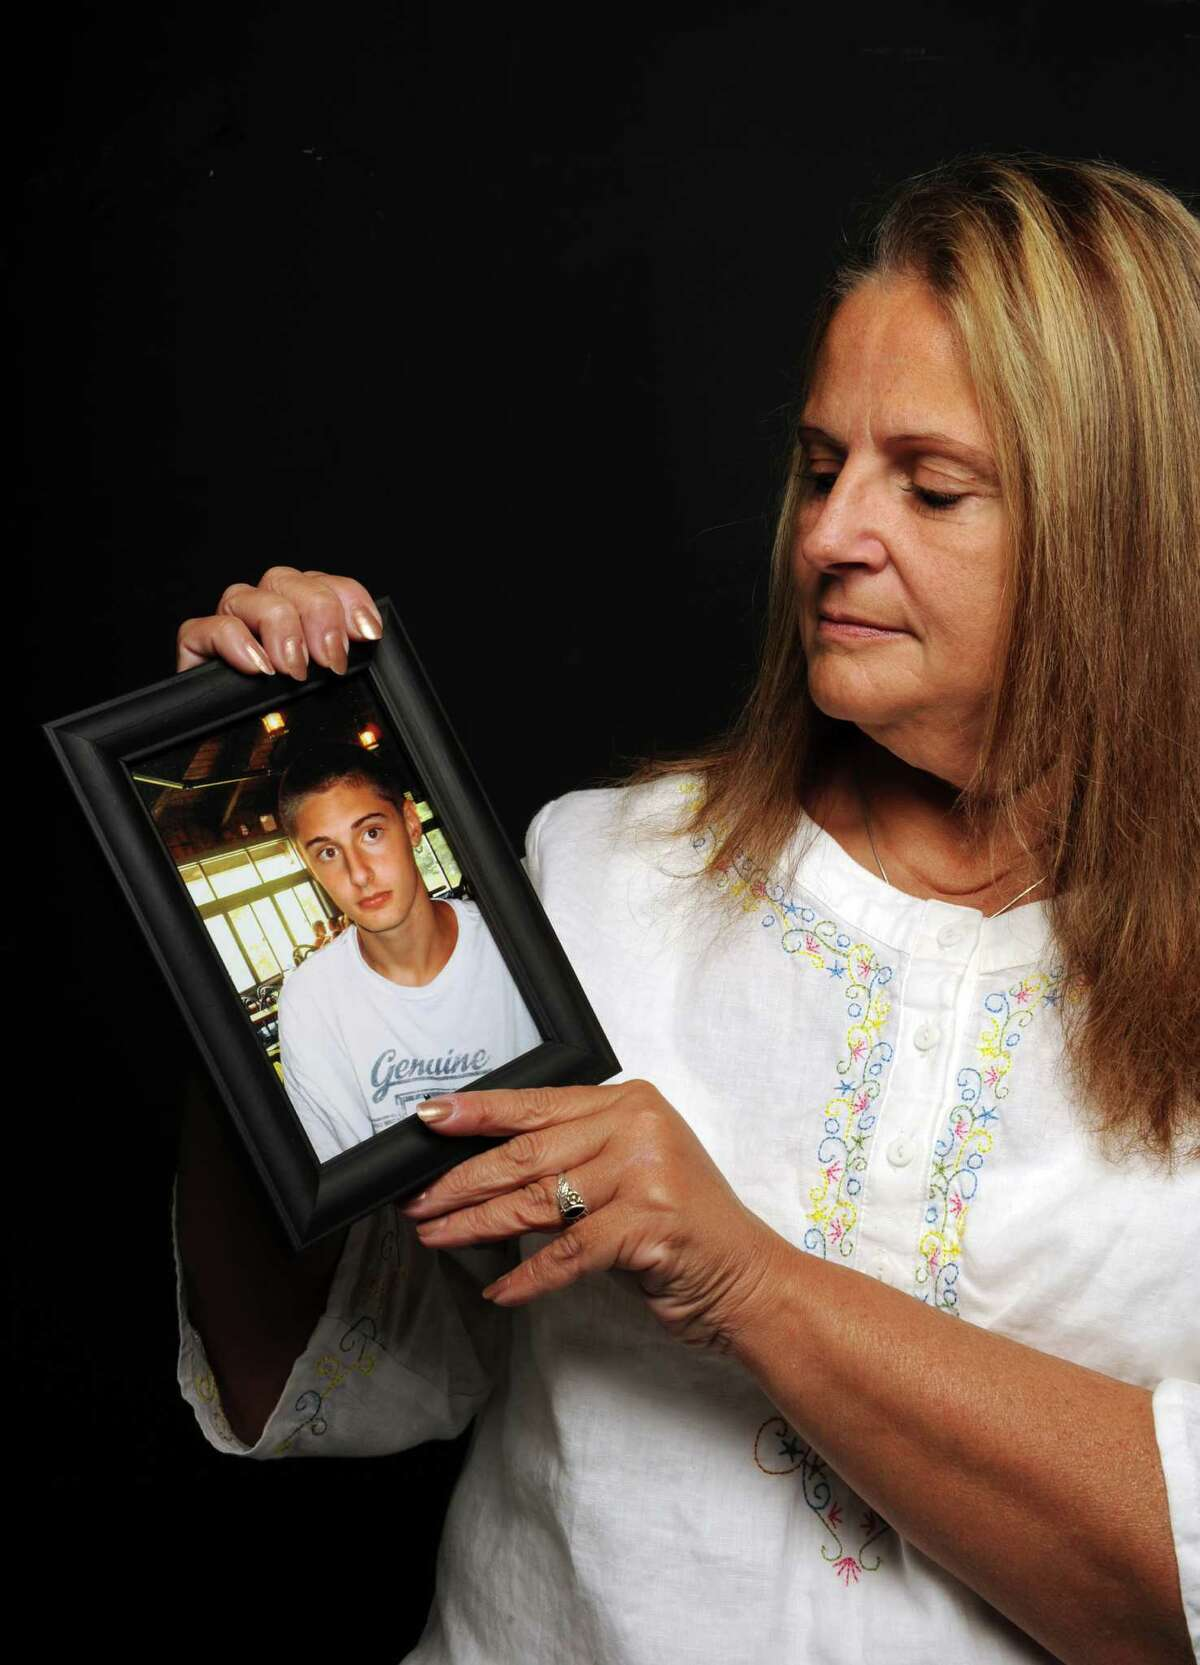 Brenda Auerbach of Averill Park holds a photo of her son Jeremiah Lyman, who died from a heroin overdose last year at just 20 years old. N.Y. (Michael P. Farrell/Times Union)